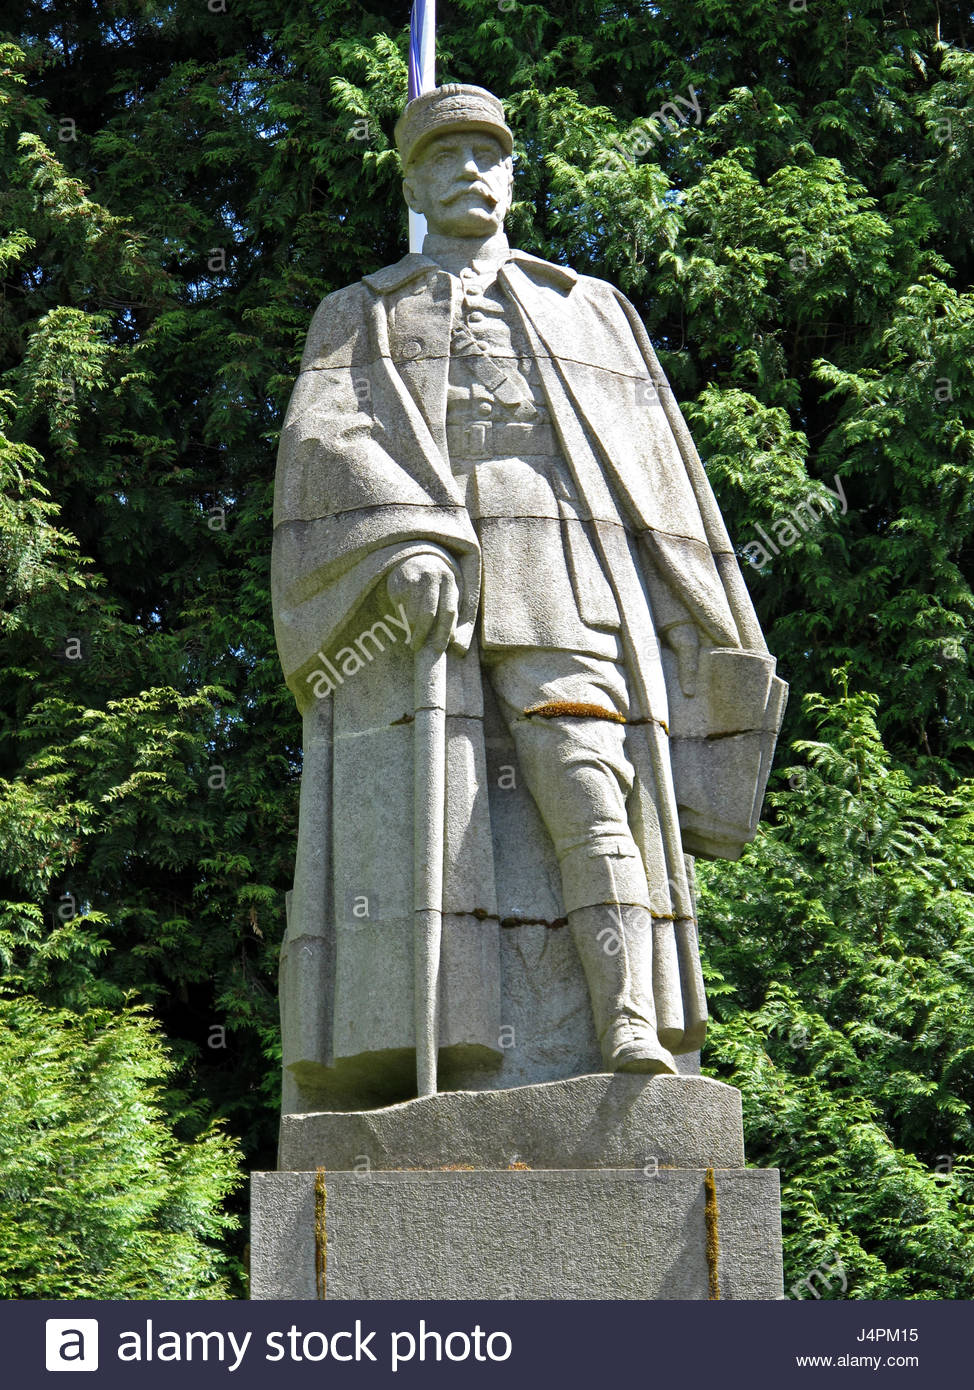 A2 marechal-foch-statue-glade-of-the-armistice-glade-of-rethondes-armistice-J4PM15.jpg